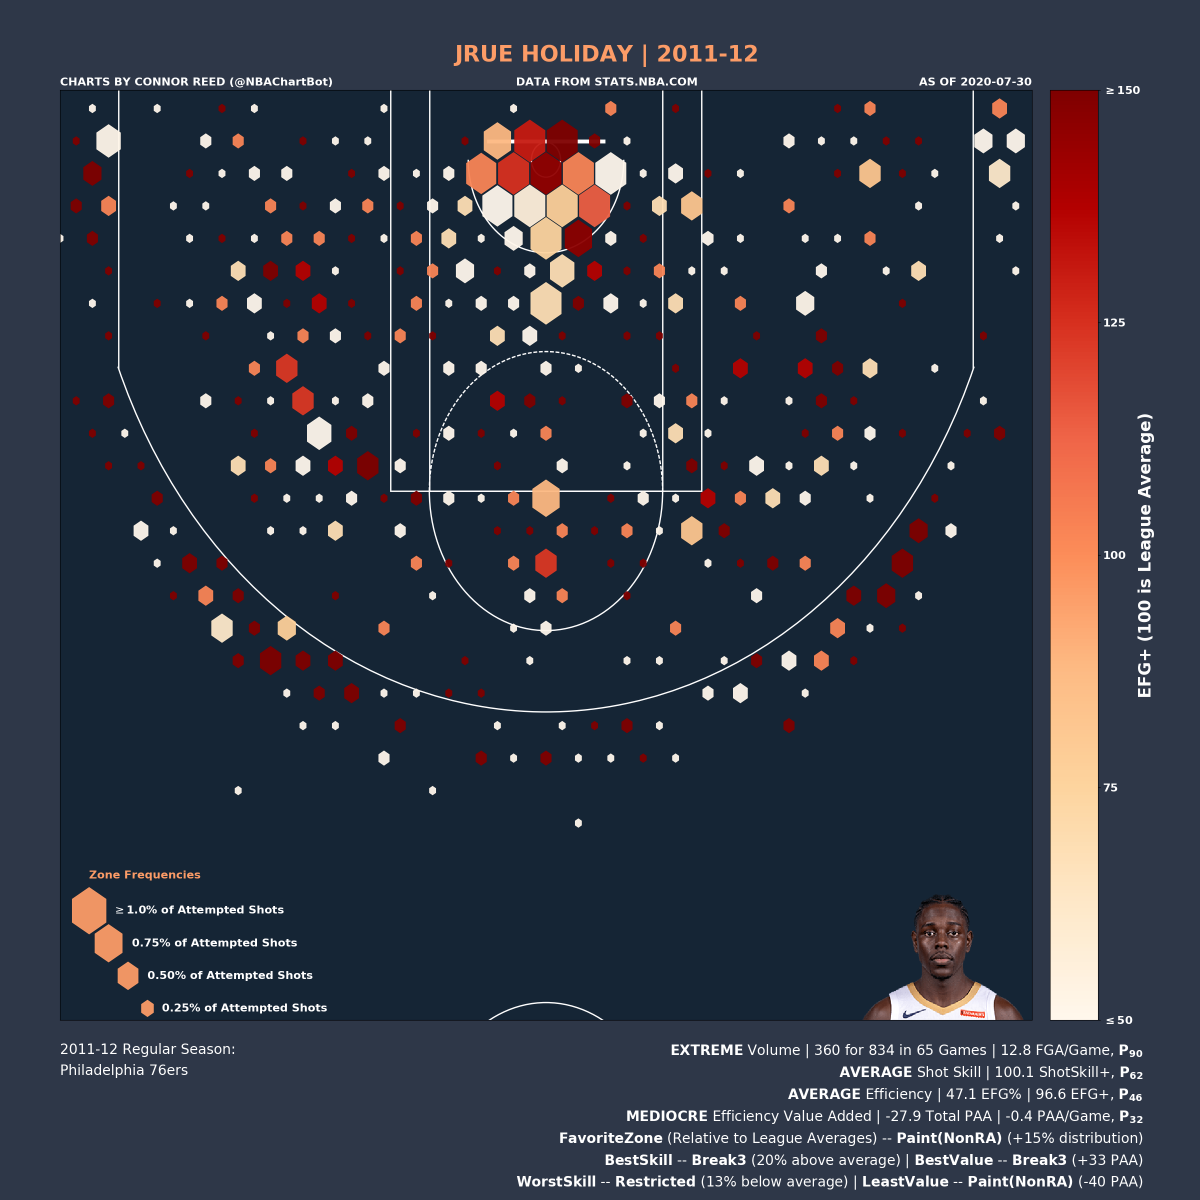 Jrue Holiday's 2011-12 Shot Chart:  Volume: EXTREME | P_90 (percentile) Shot Skill: AVERAGE | P_62 Efficiency: AVERAGE | P_46 Efficiency Value: MEDIOCRE | P_32  Favorite Zone: Paint(NonRA) Best Skill Zone: Break3 Best Value Zone: Break3  #JrueHoliday #76ers #HereTheyComepic.twitter.com/0Geq9EwcP0